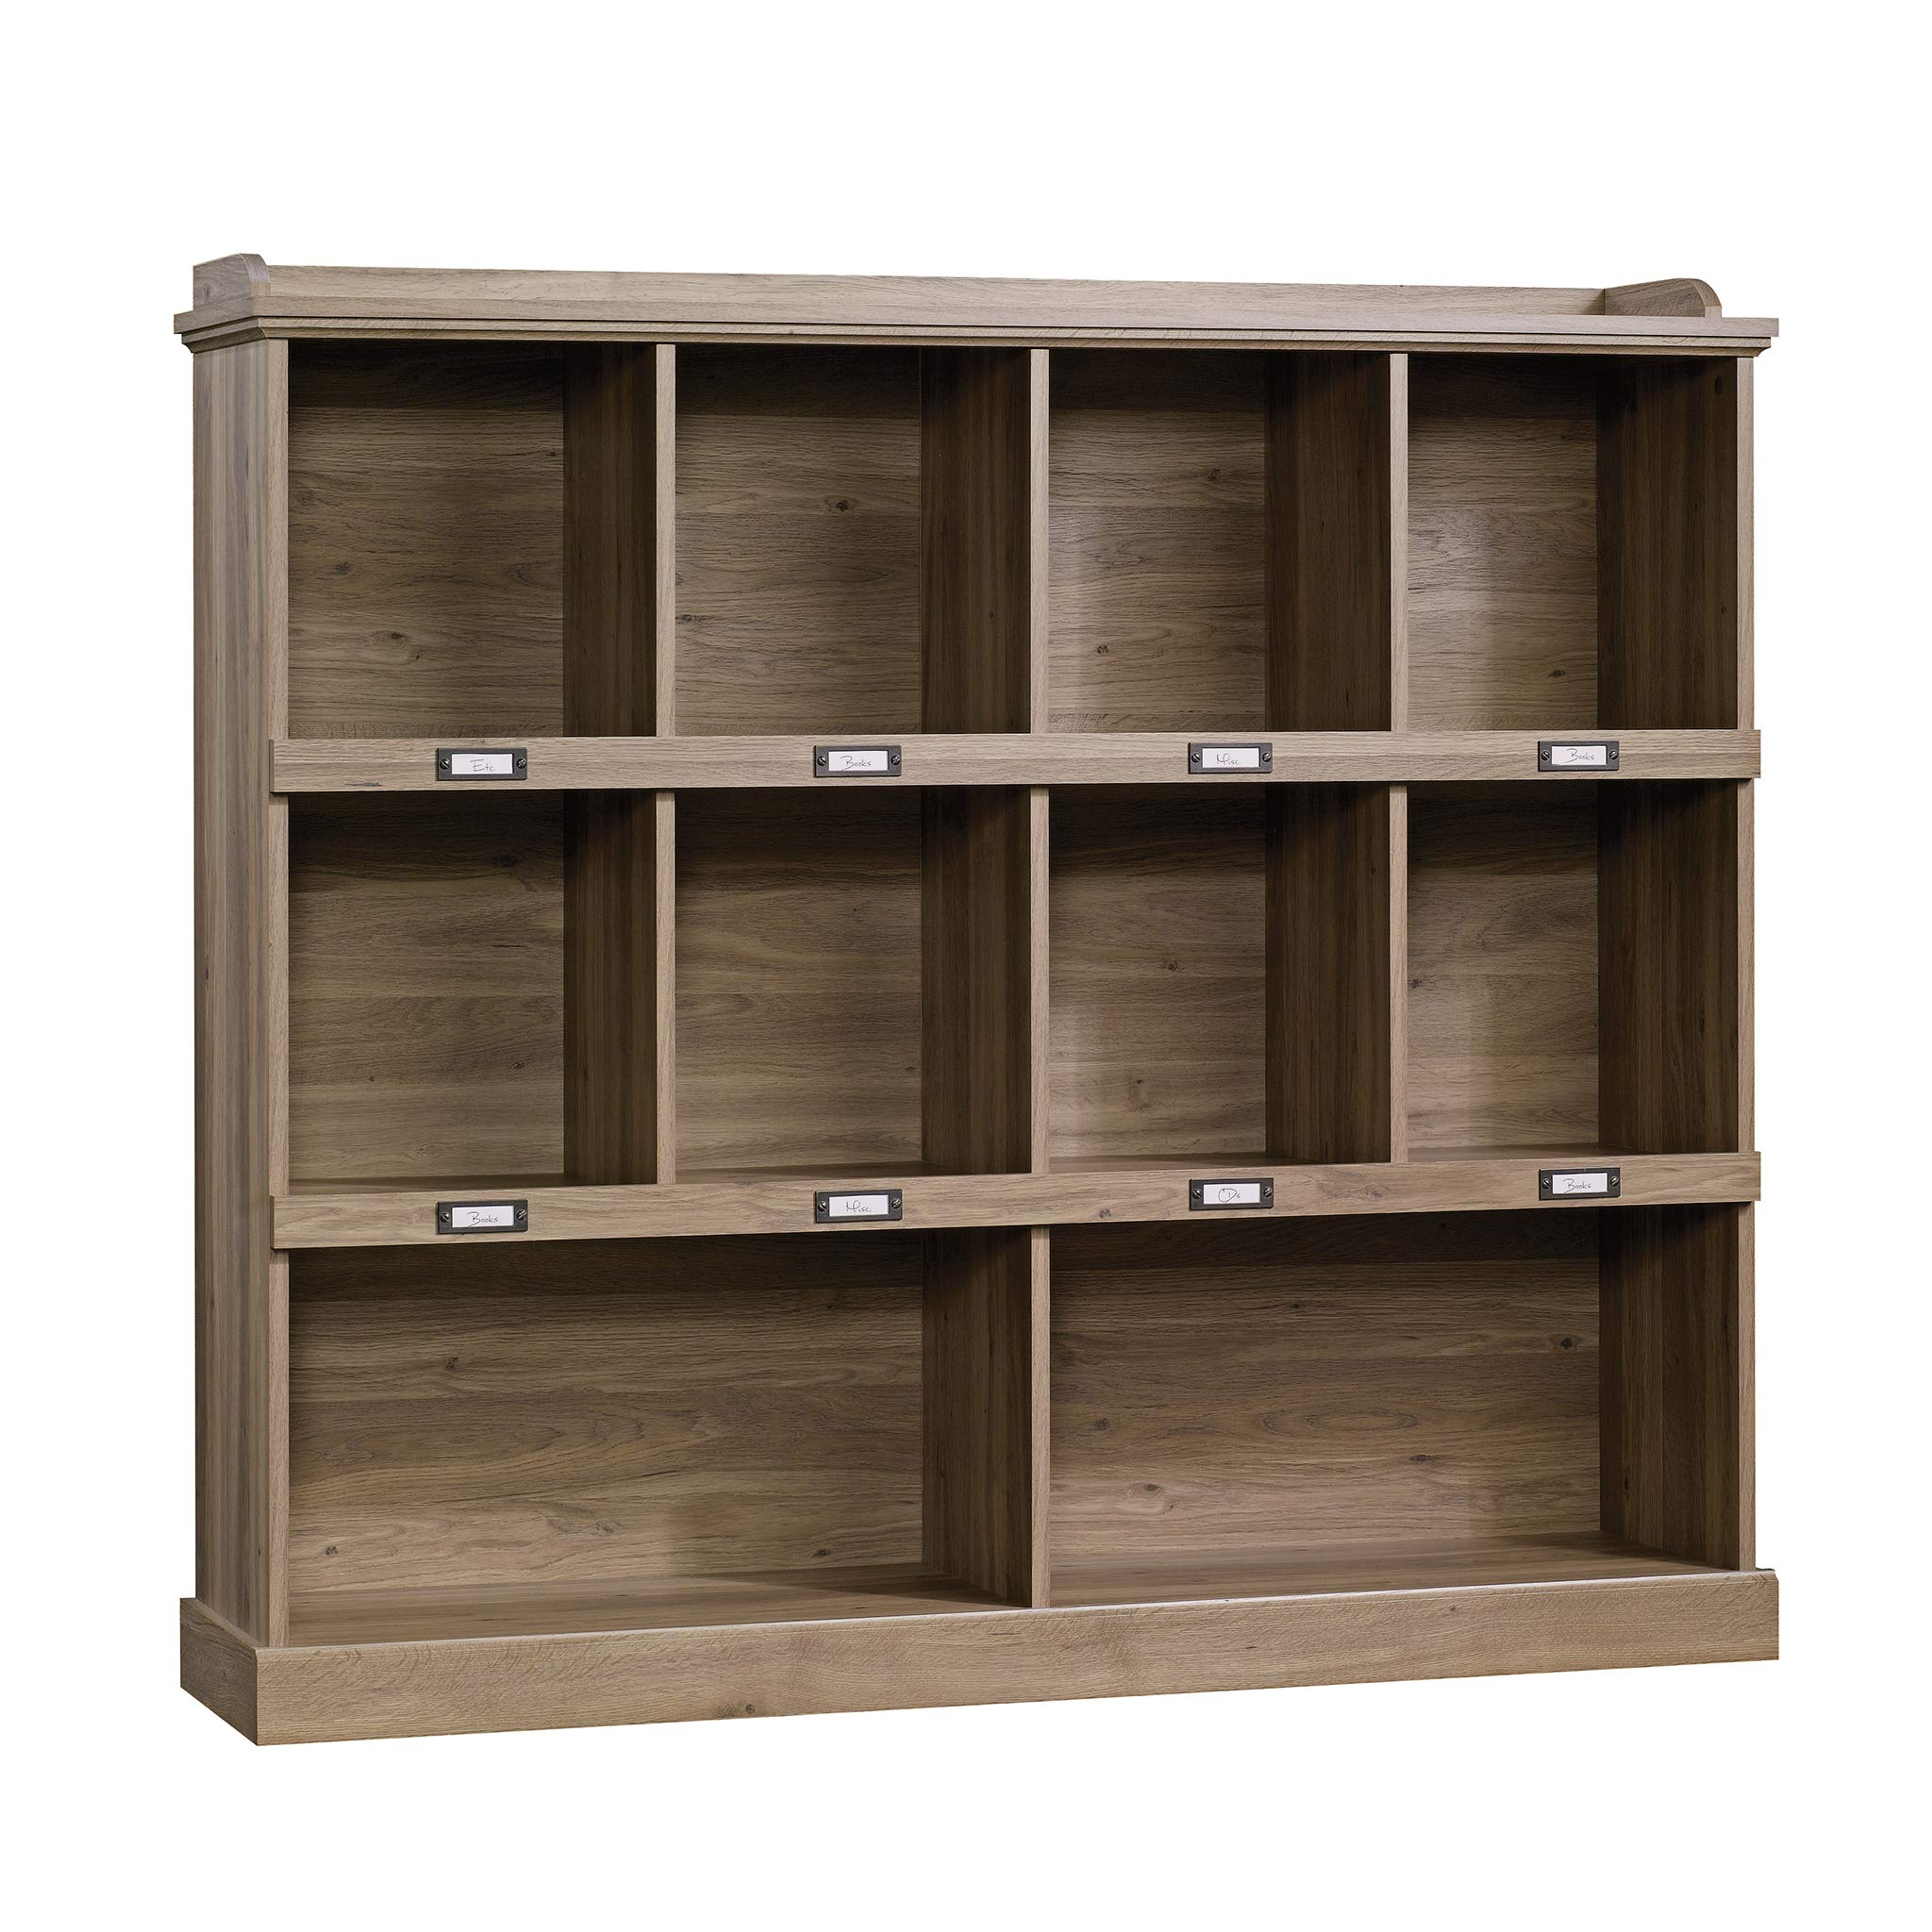 Set of 2 Barrister 10 Cube Bookcase Gallery Display, Ample Storage Space, Brilliant Quality Wood Build, Versatile Contemporary Modern Design, 53.''L x 12'' W x 47.5'' H Dimensions, Salted Oak Finish by Diversified Closet